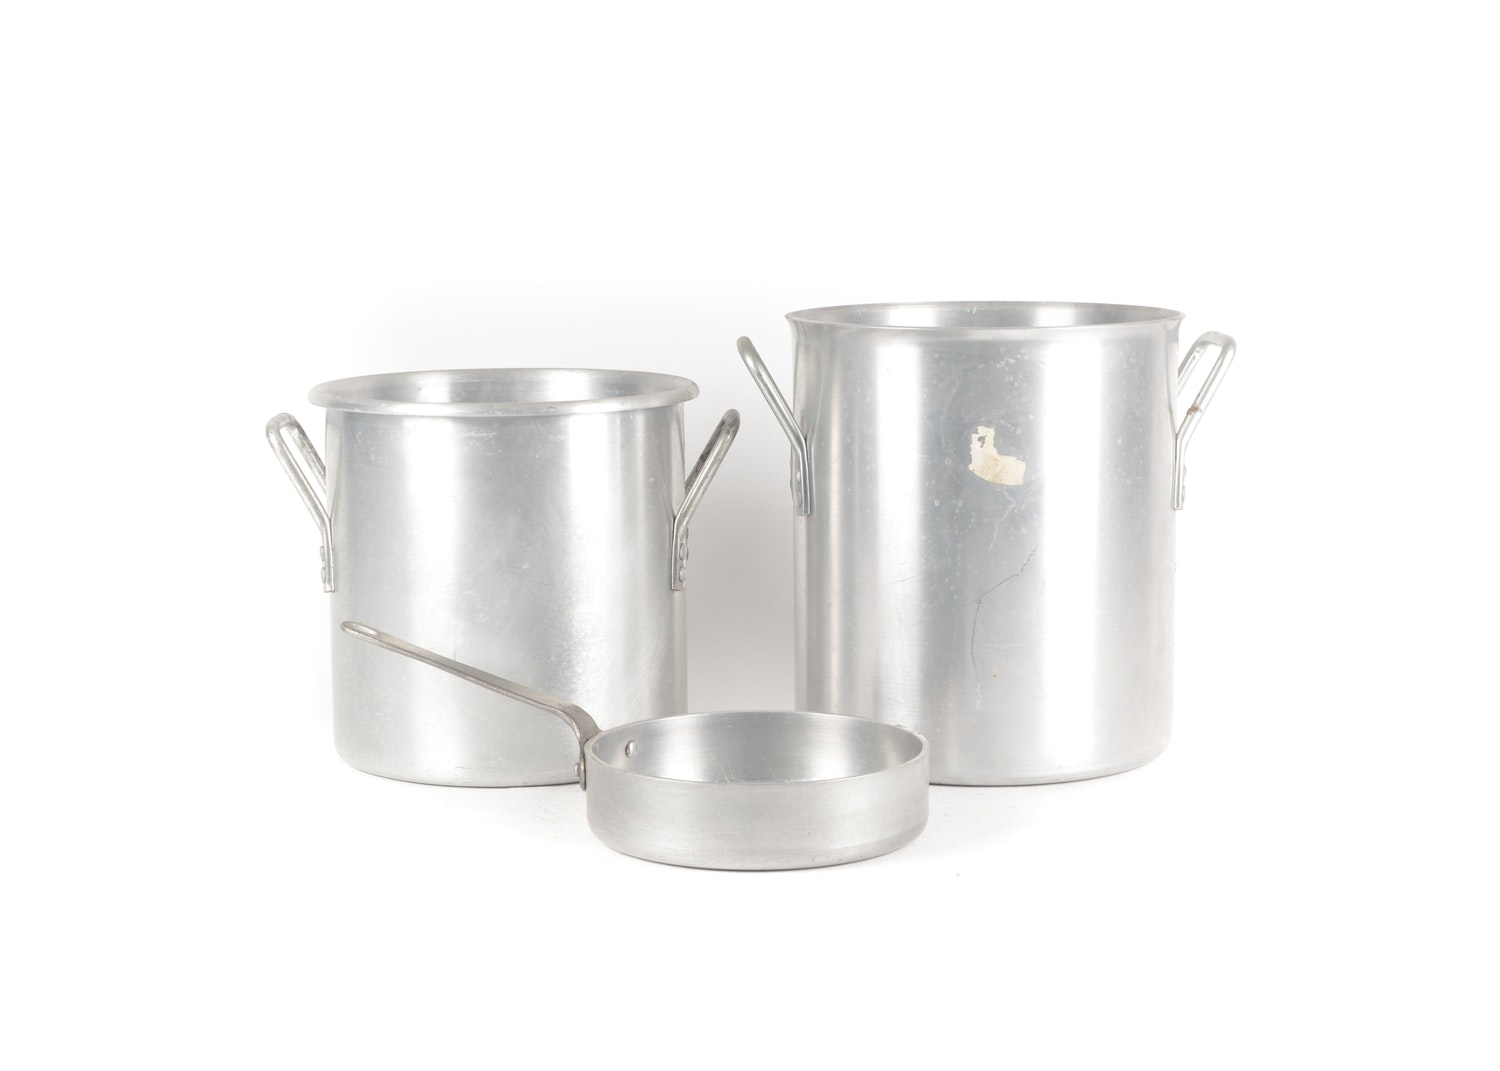 Vintage Aluminum Stockpots and Sauté Pan featuring Wear-Ever